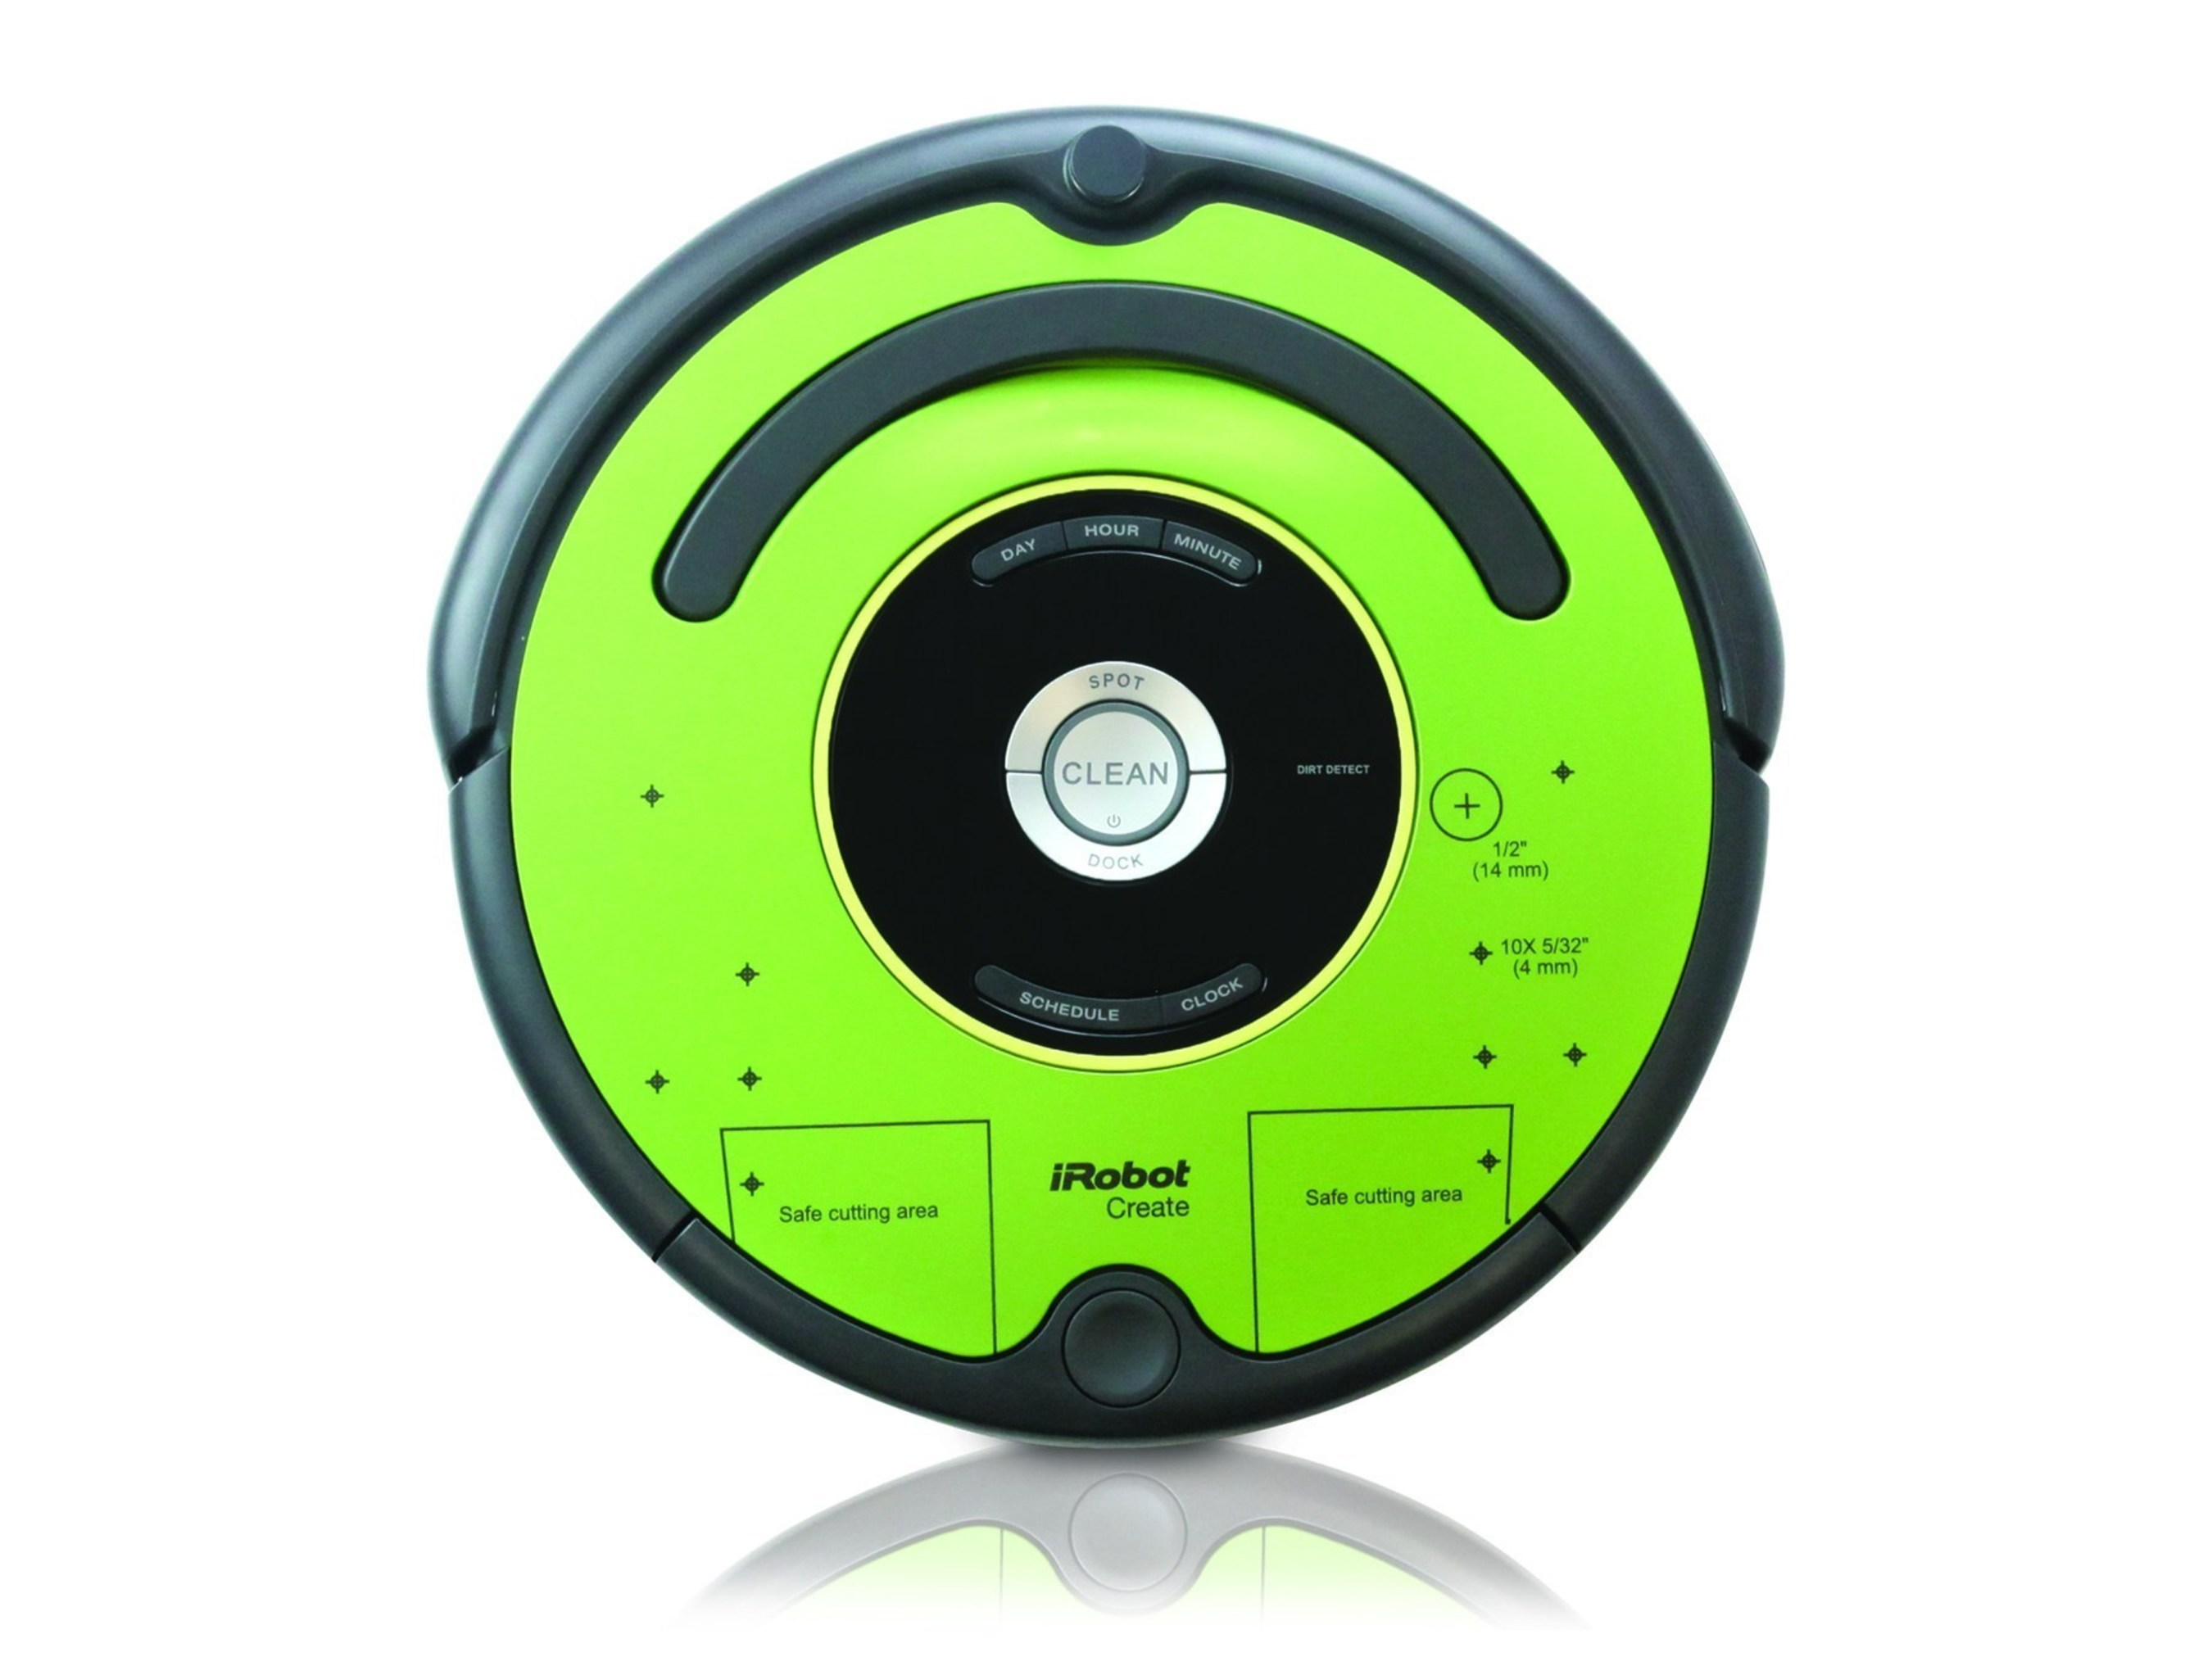 iRobot Create 2 is a preassembled mobile robot based on the Roomba 600 Series that provides an out-of-the-box ...